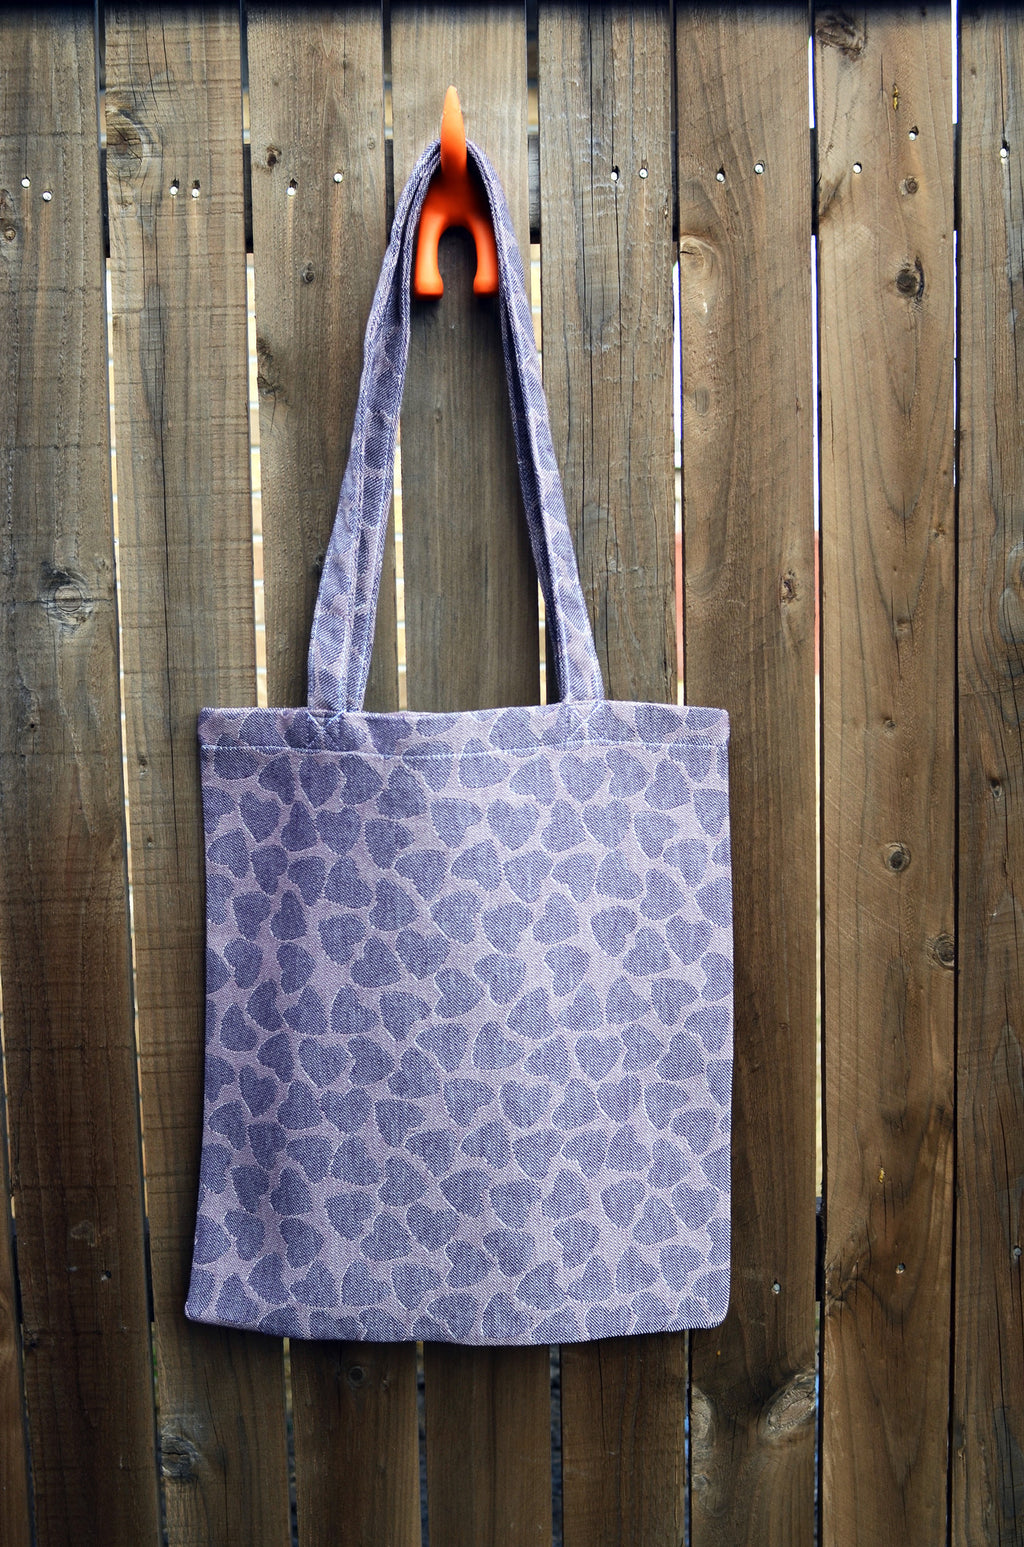 Smitten with Wovens Vena Cava - Lenae TOTE BAG